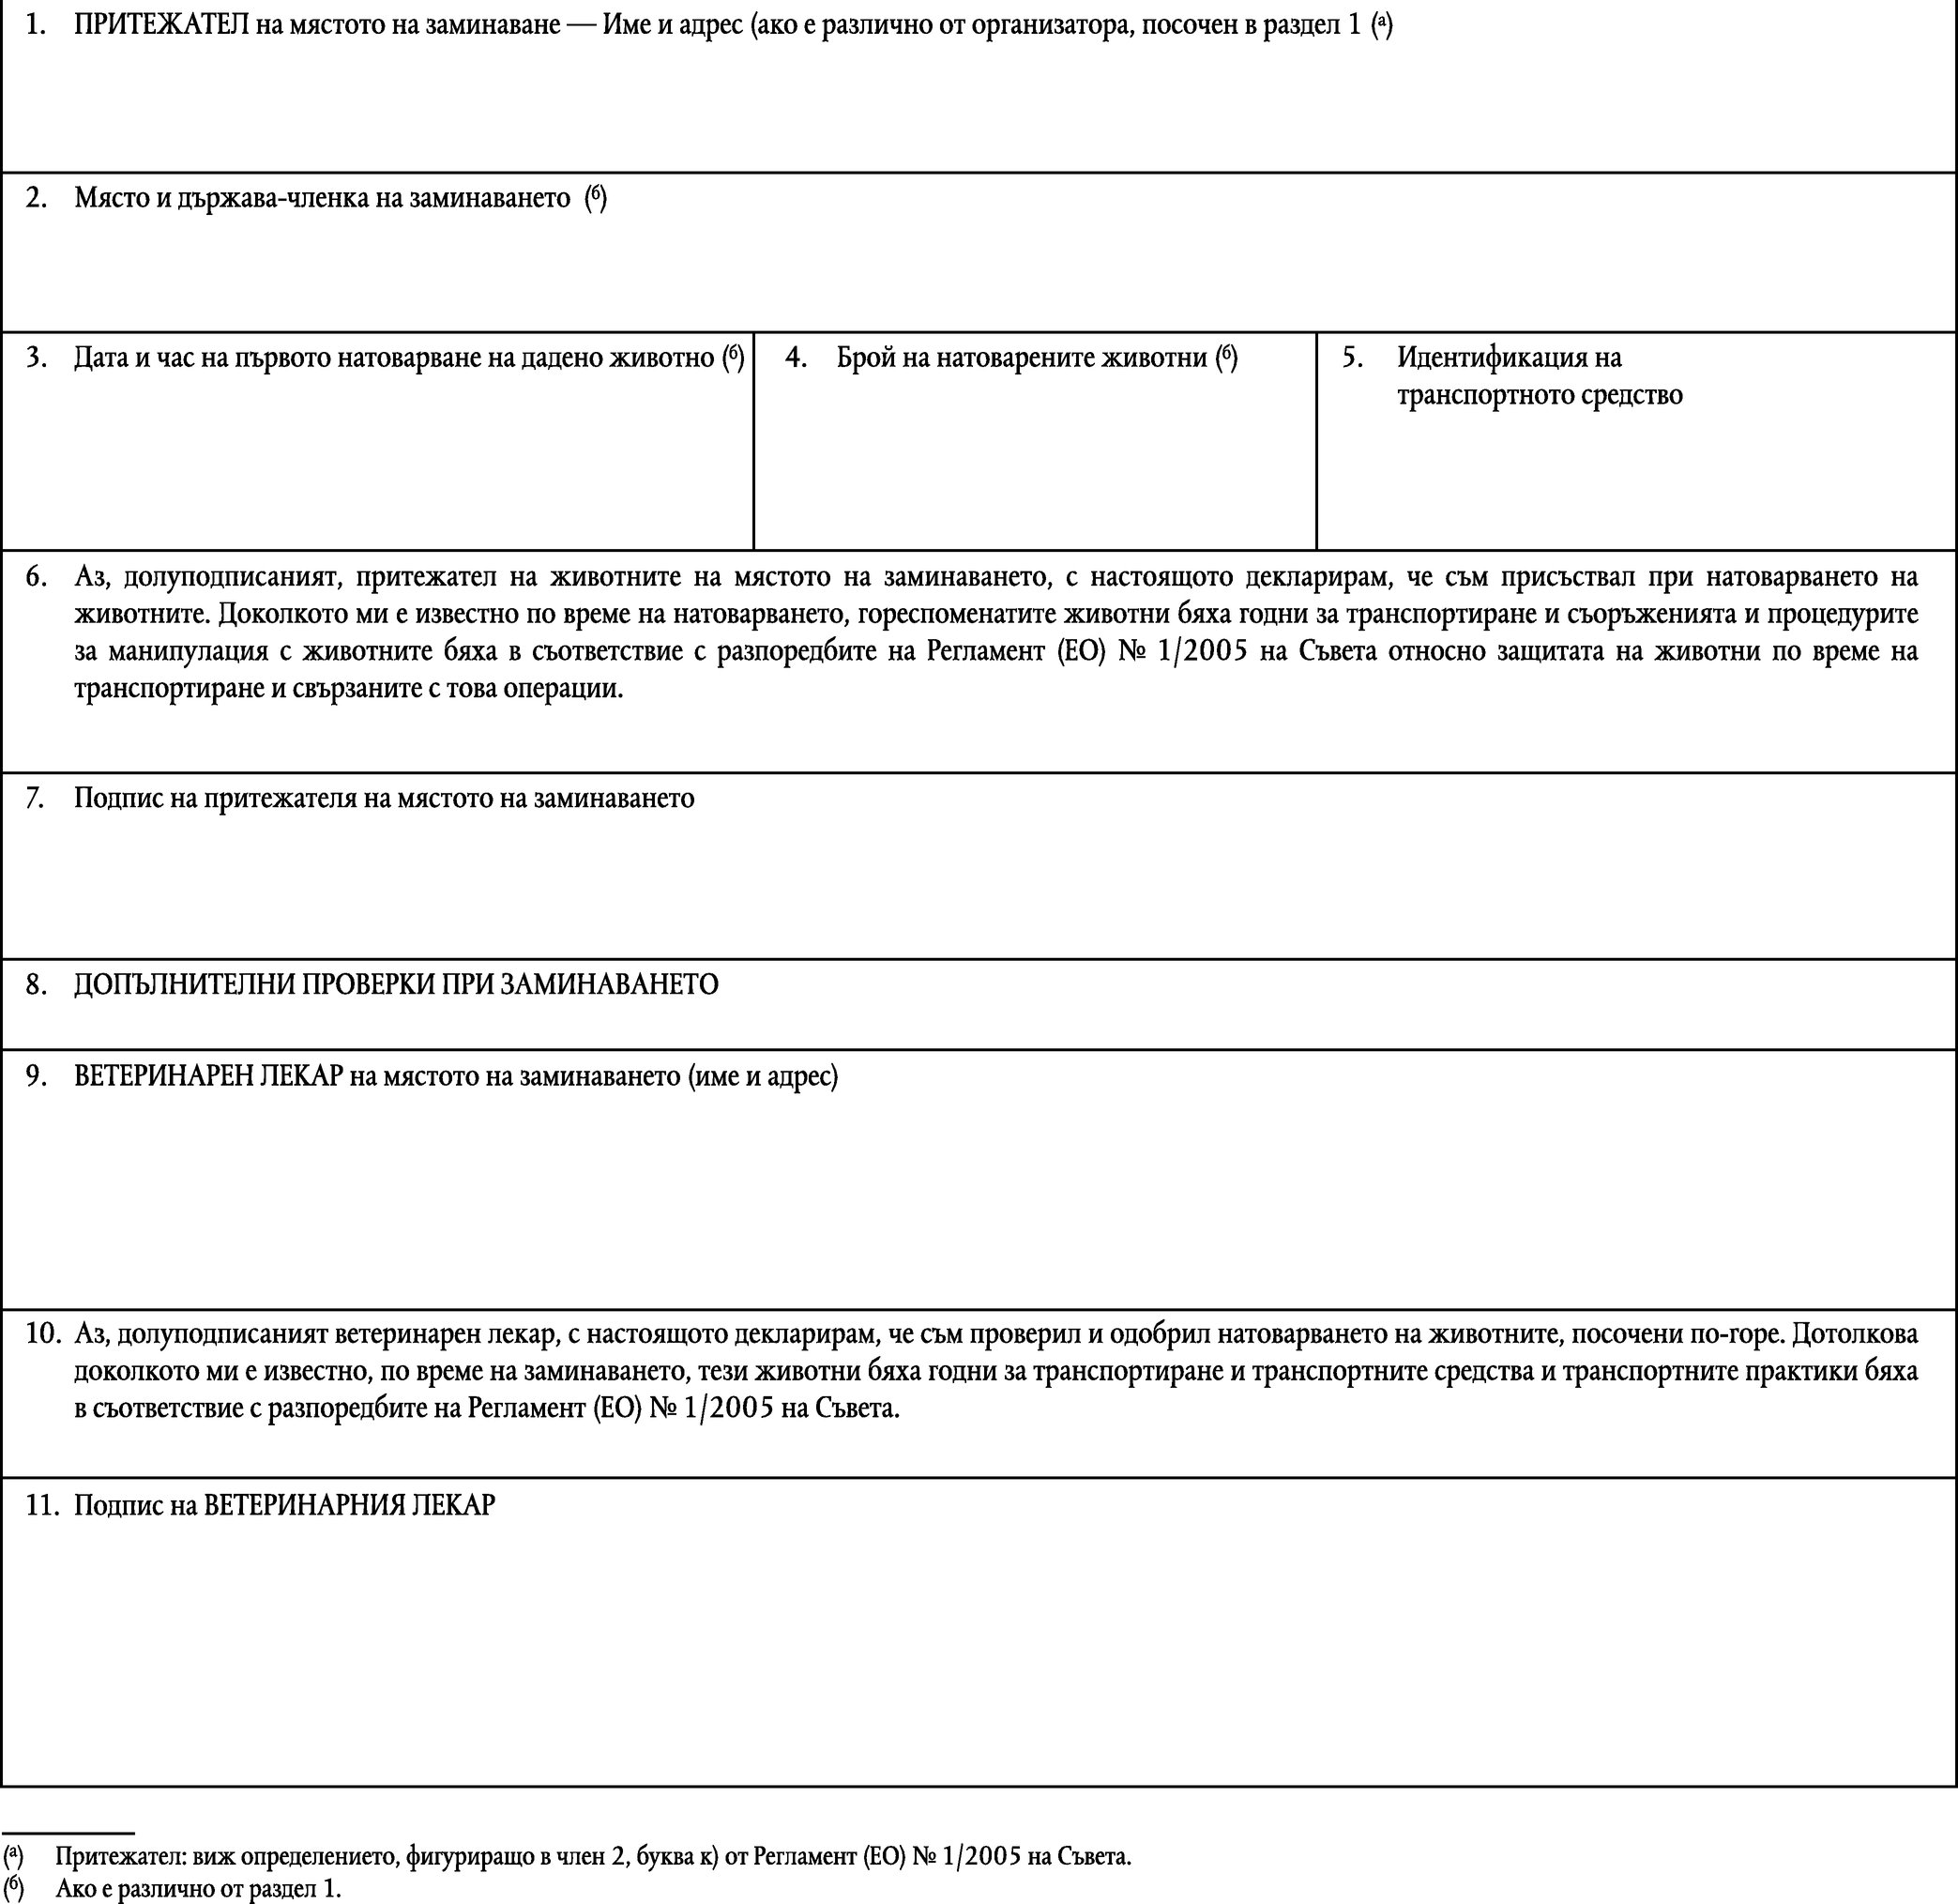 Eur Lex 32005r0001 En 06 15 2005 I Went Ahead And Got Quotes For Replacement Equipment